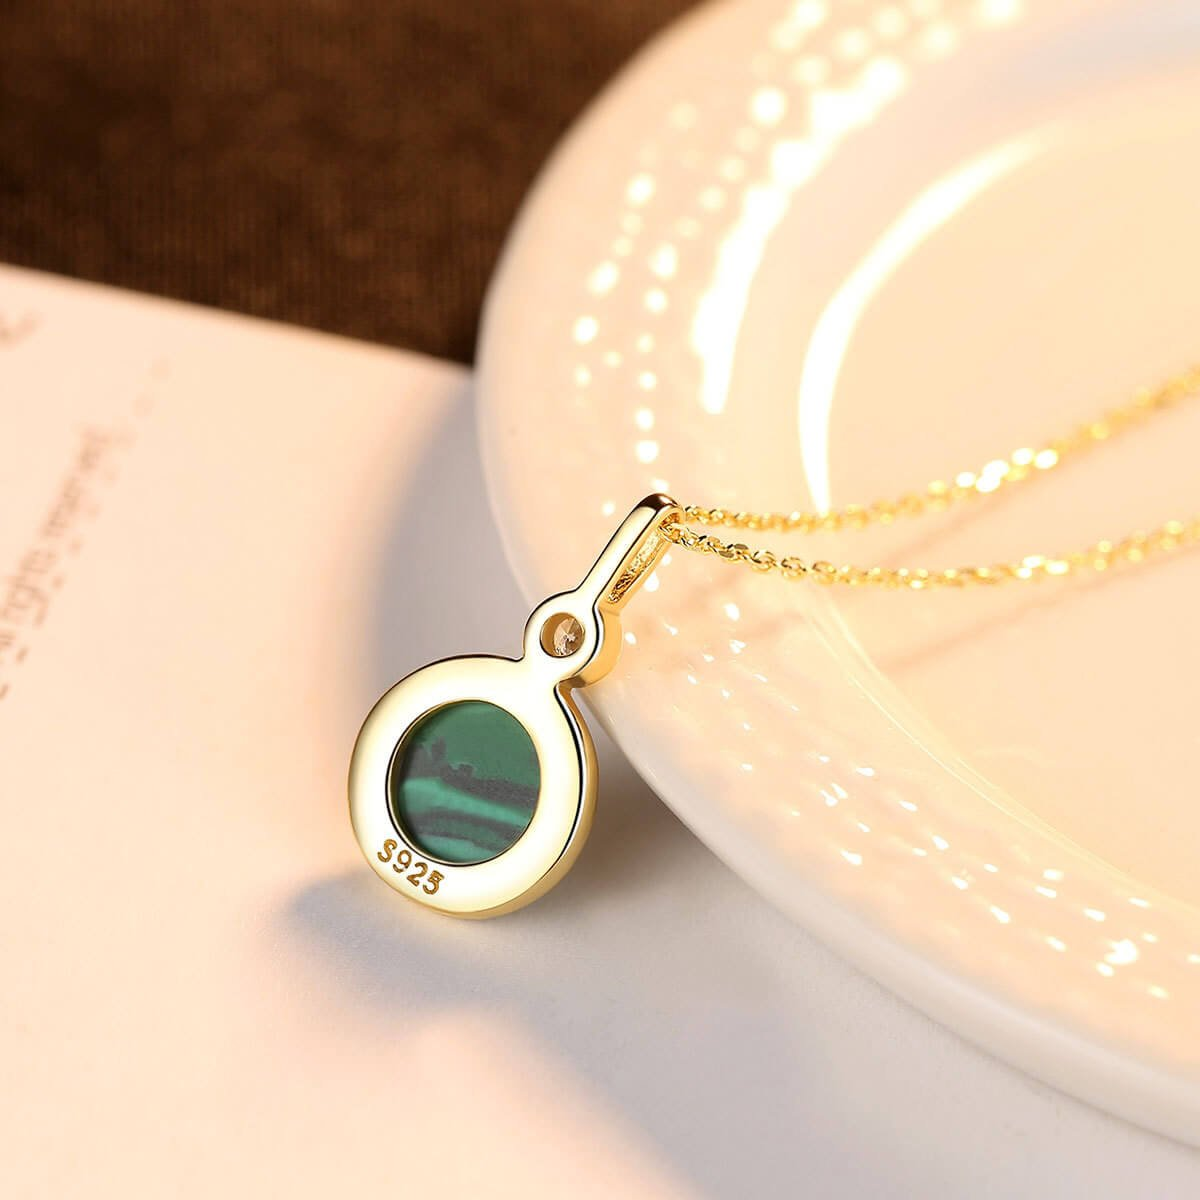 Round Malachite Student's Sterling Silver Necklace